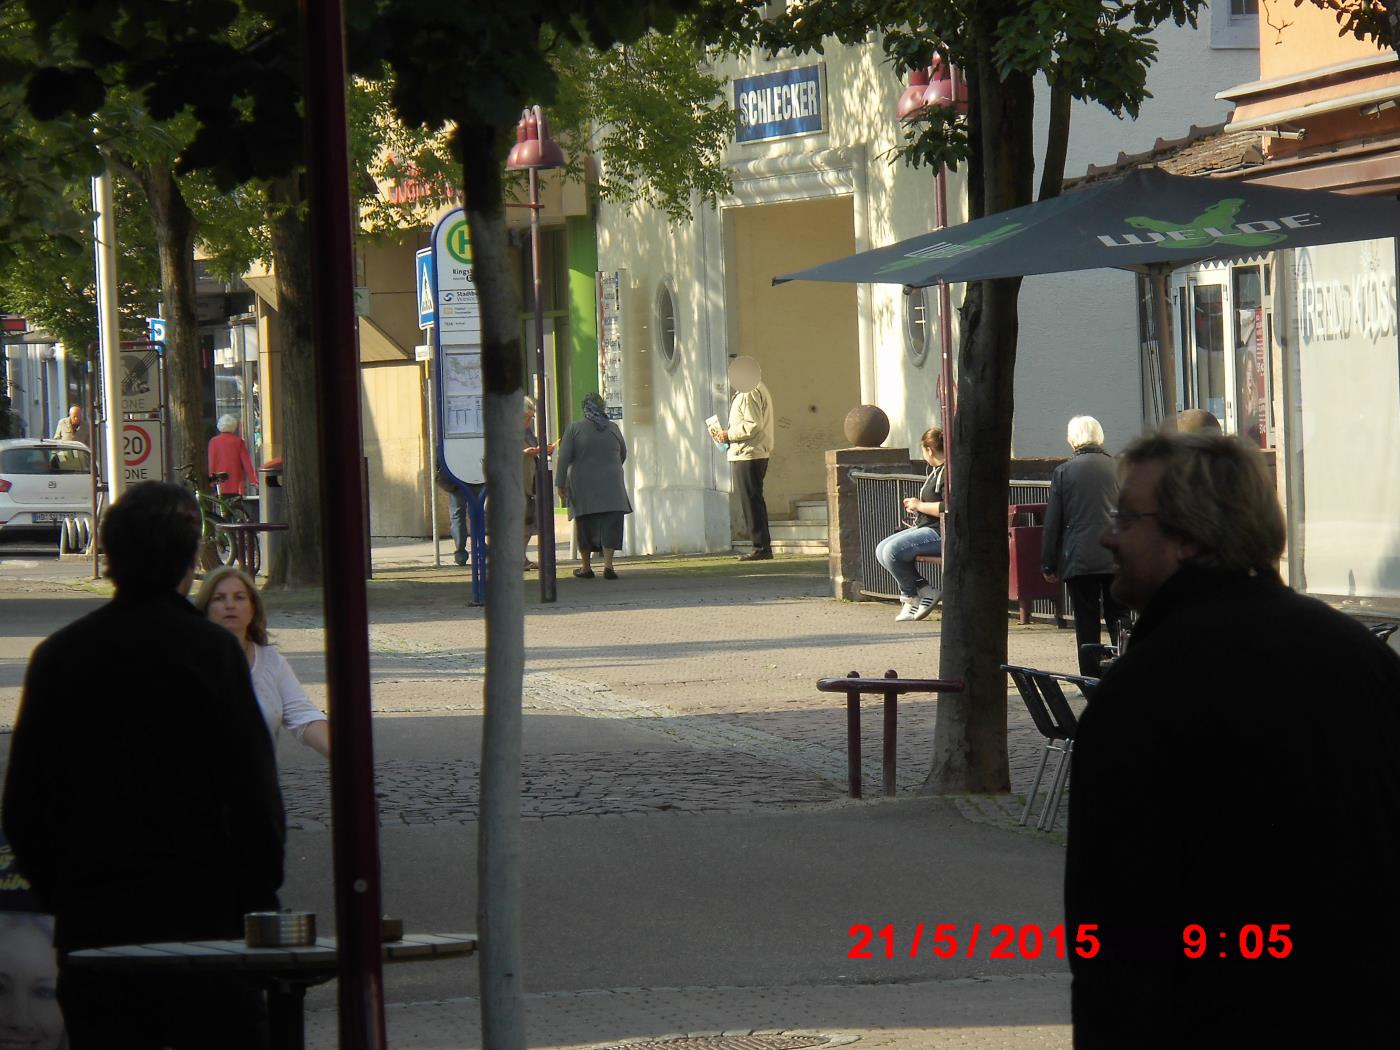 Wiesloch teems with Jehovah's Witnesses